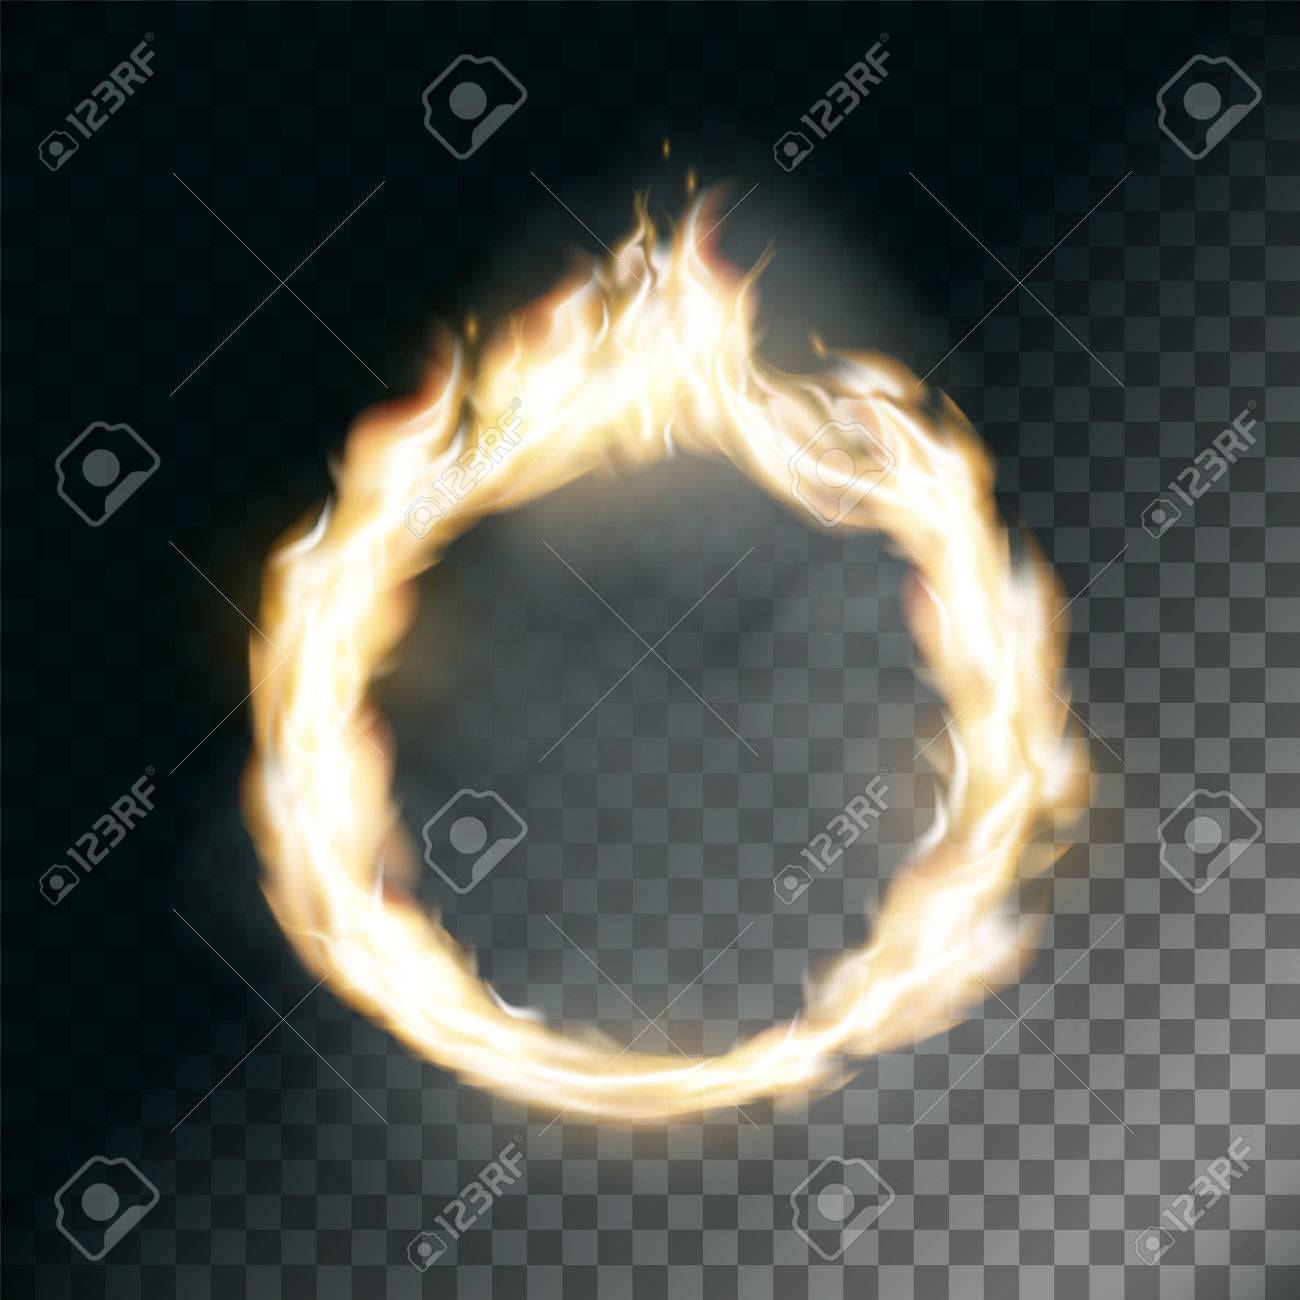 circus ring on fire texture of flame on transparent background